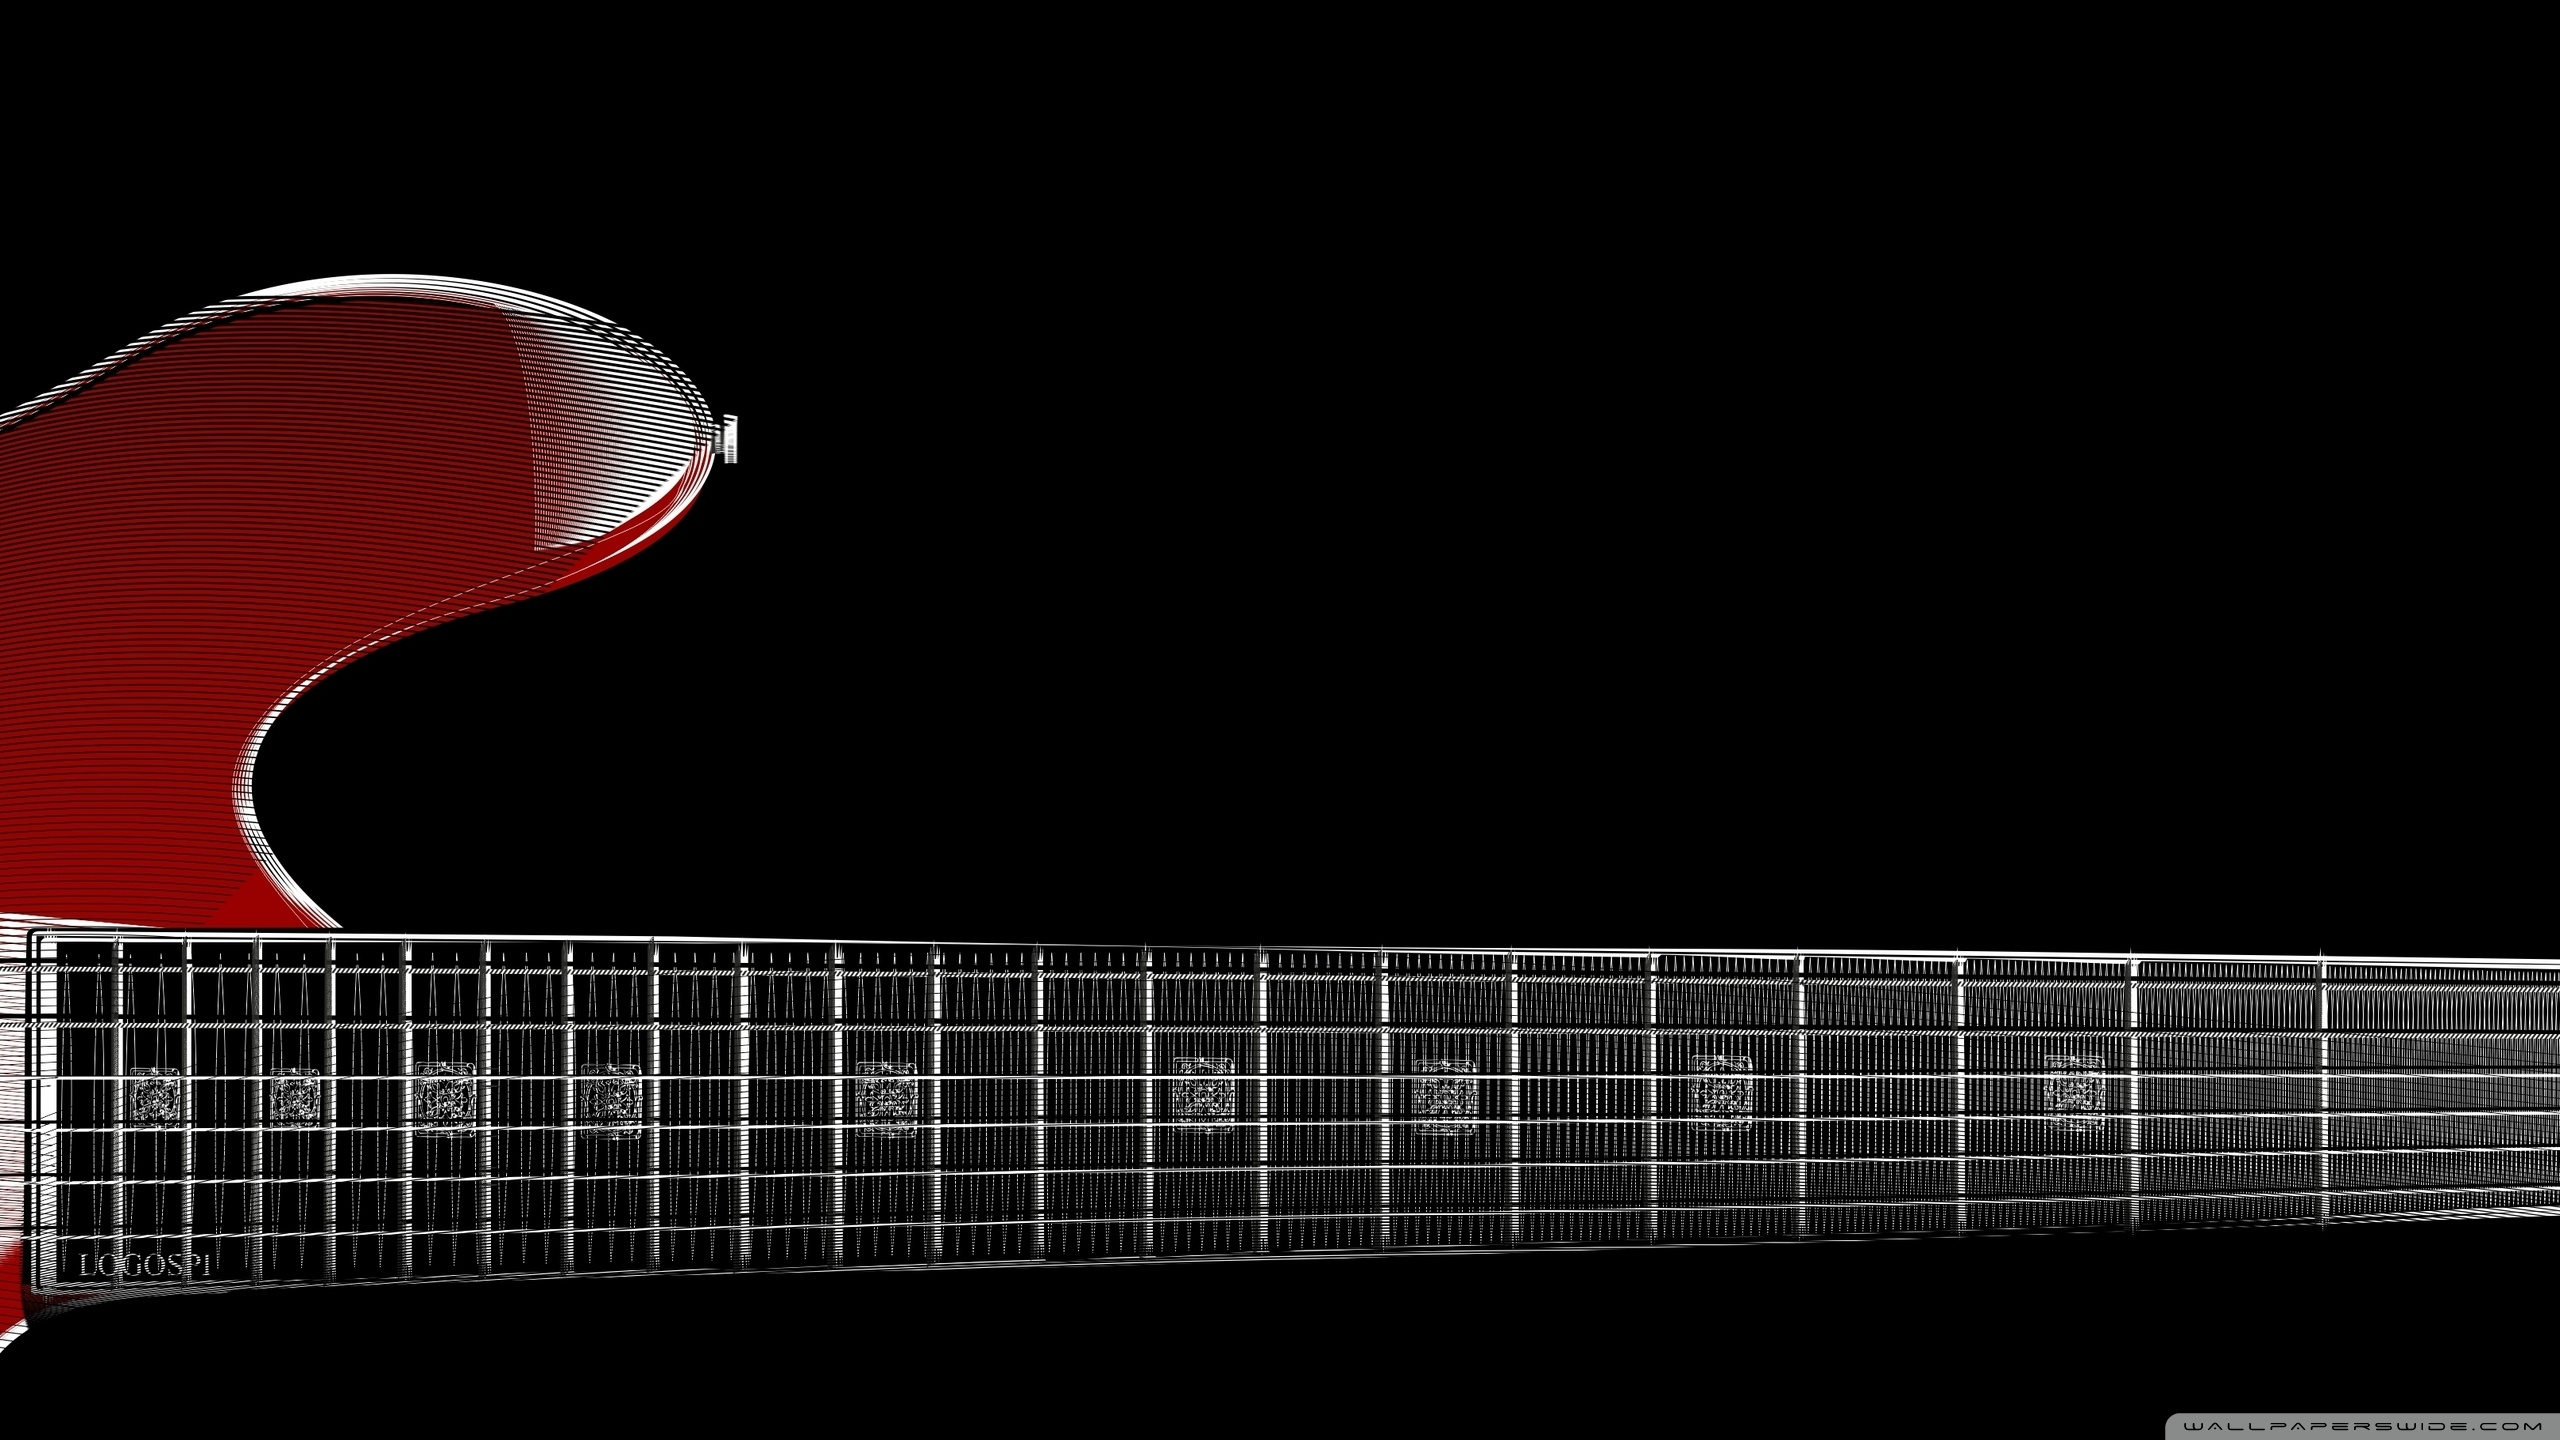 Guitar Hd Wallpaper Download Zoom Red Guitar 4k Hd Desktop Wallpaper For 4k Ultra Hd Tv